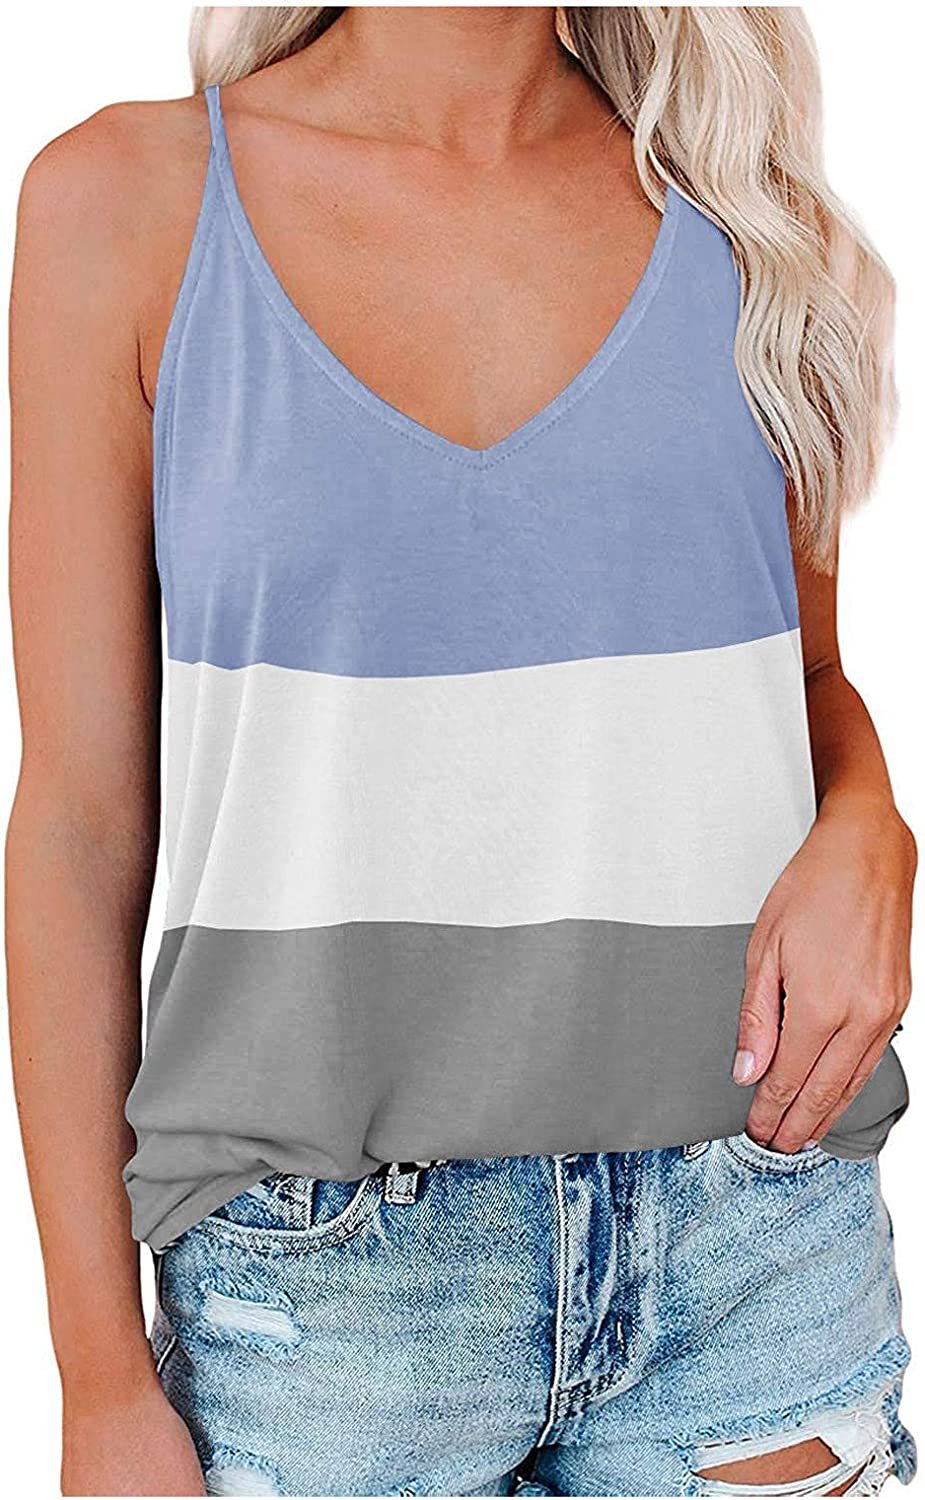 ovticza Womens Los Angeles Mall Summer Tops Women To Vest Fashion Large-scale sale Patchwork Color